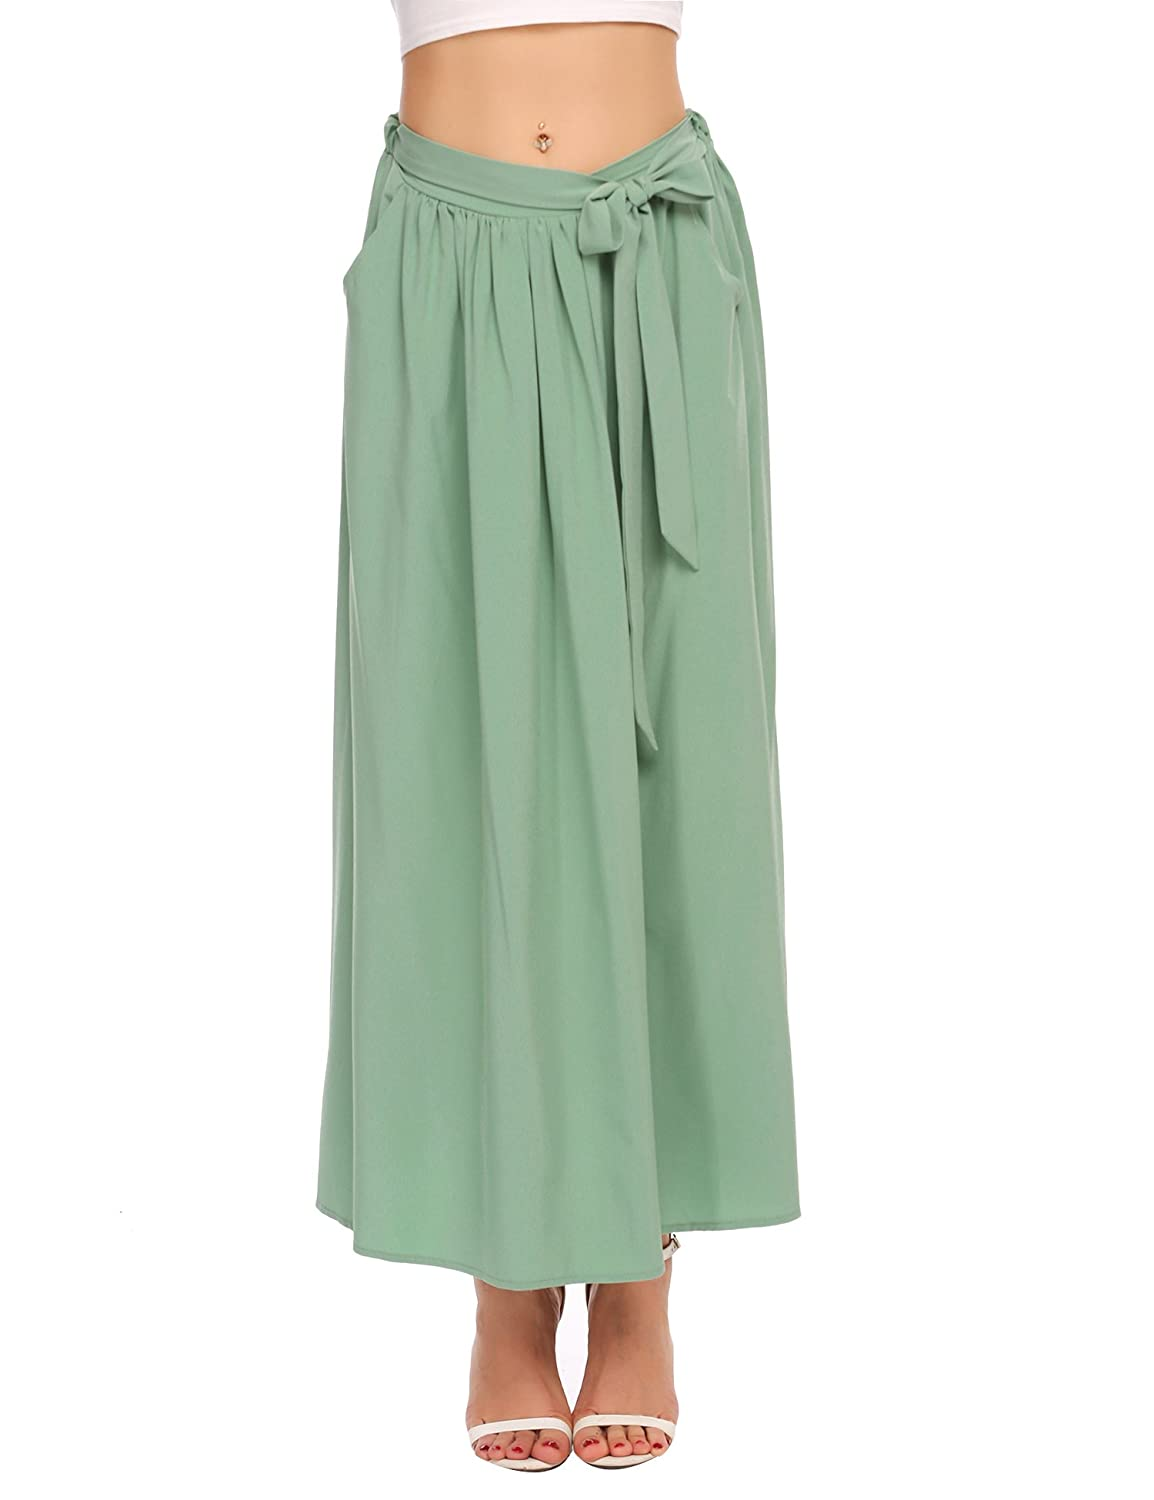 Chigant SKIRT レディース Green B076LXPFB2 Chigant X-Large Pea Green Grey X-Large, デコライト:a0f6dd63 --- forum.marketcentral.in